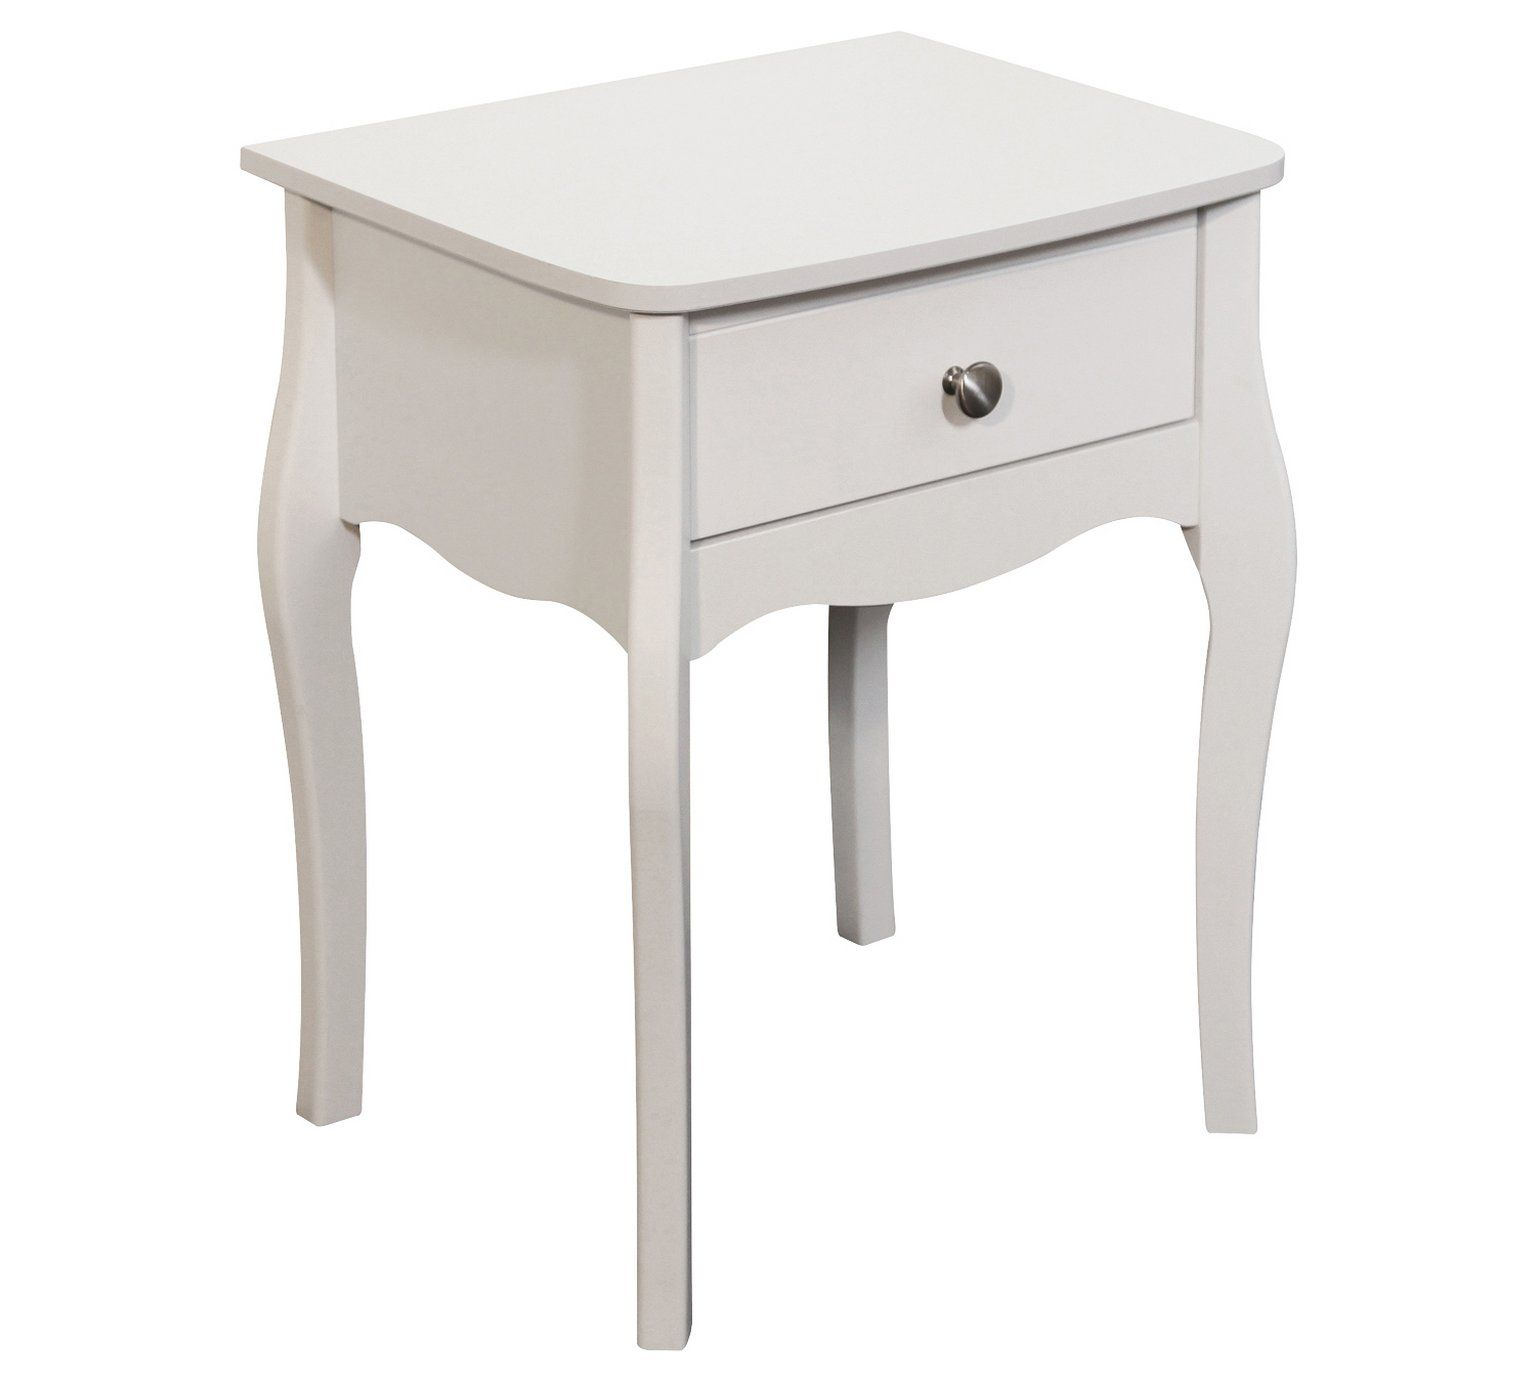 Buy Baroque 1 Drawer Bedside Chest White At Argos Co Uk Visit